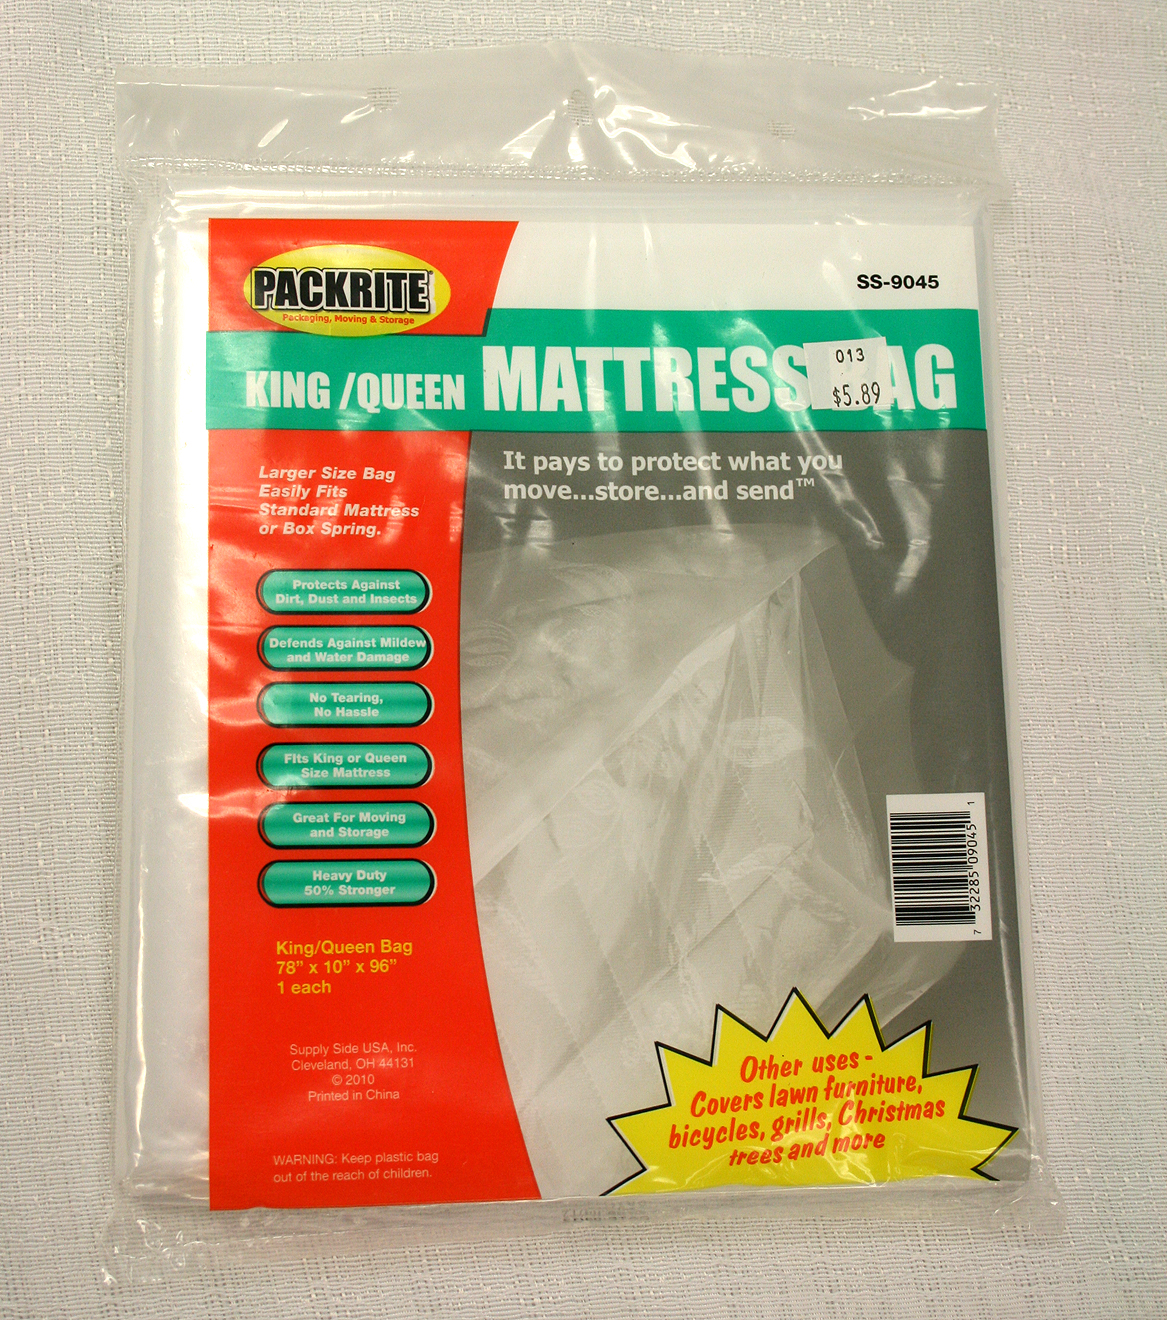 Mattress Quad Cities King and Queen sized mattress protective plastic bag for moving.